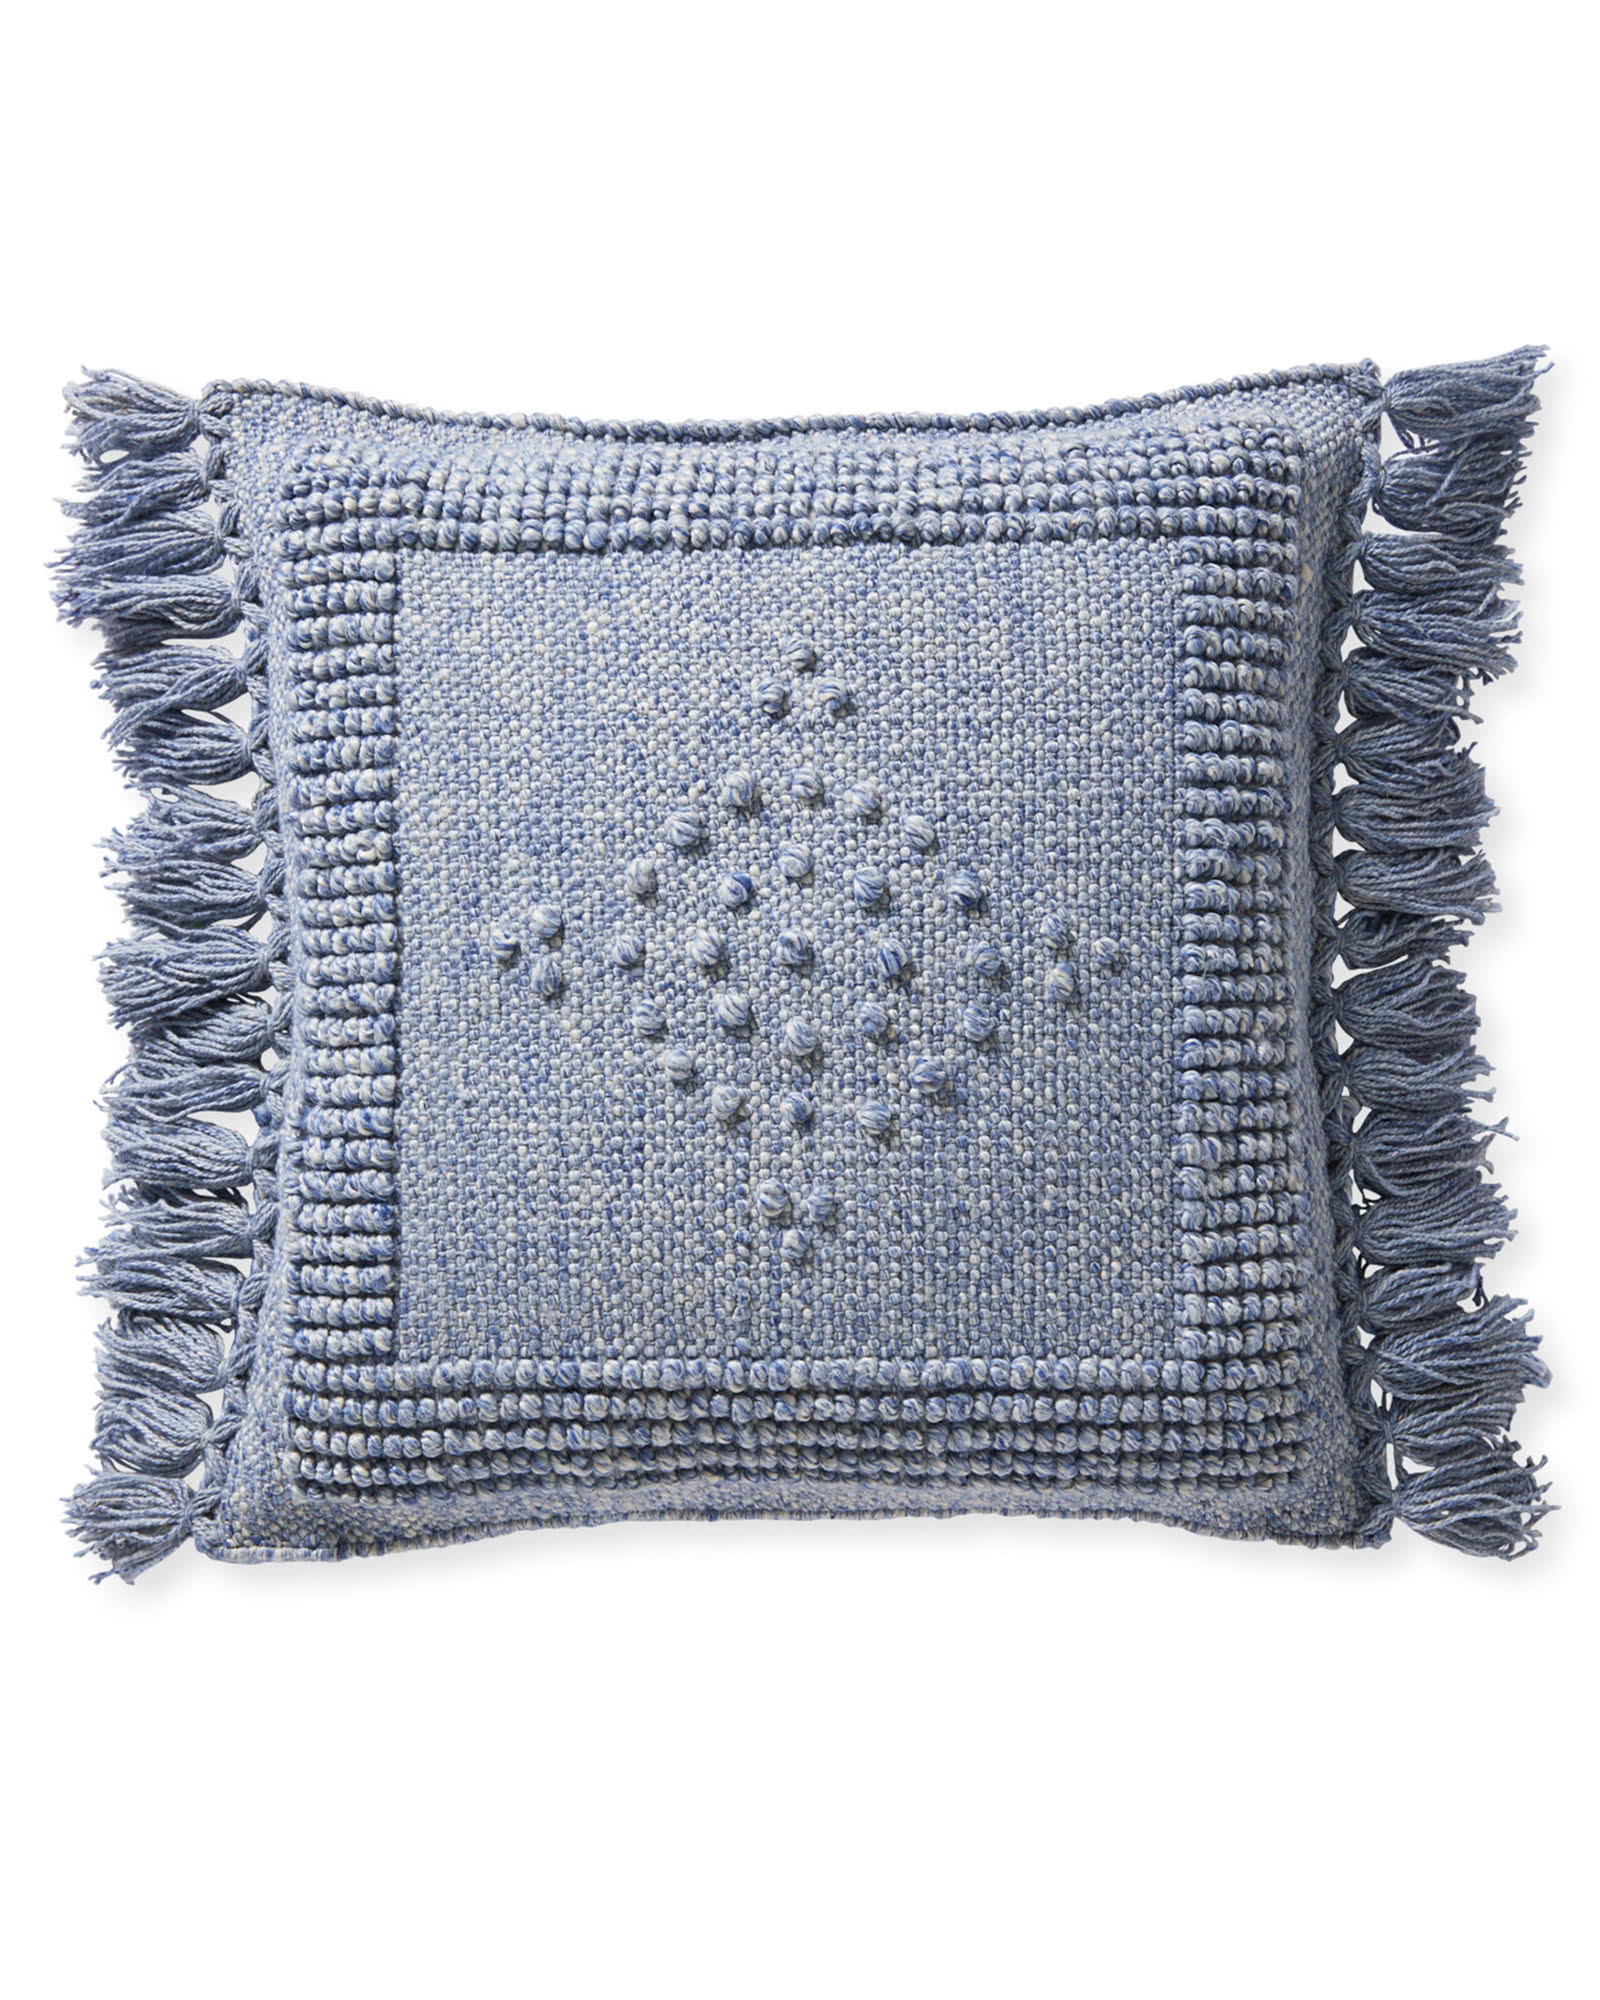 Montecito Pillow Cover, Coastal Blue